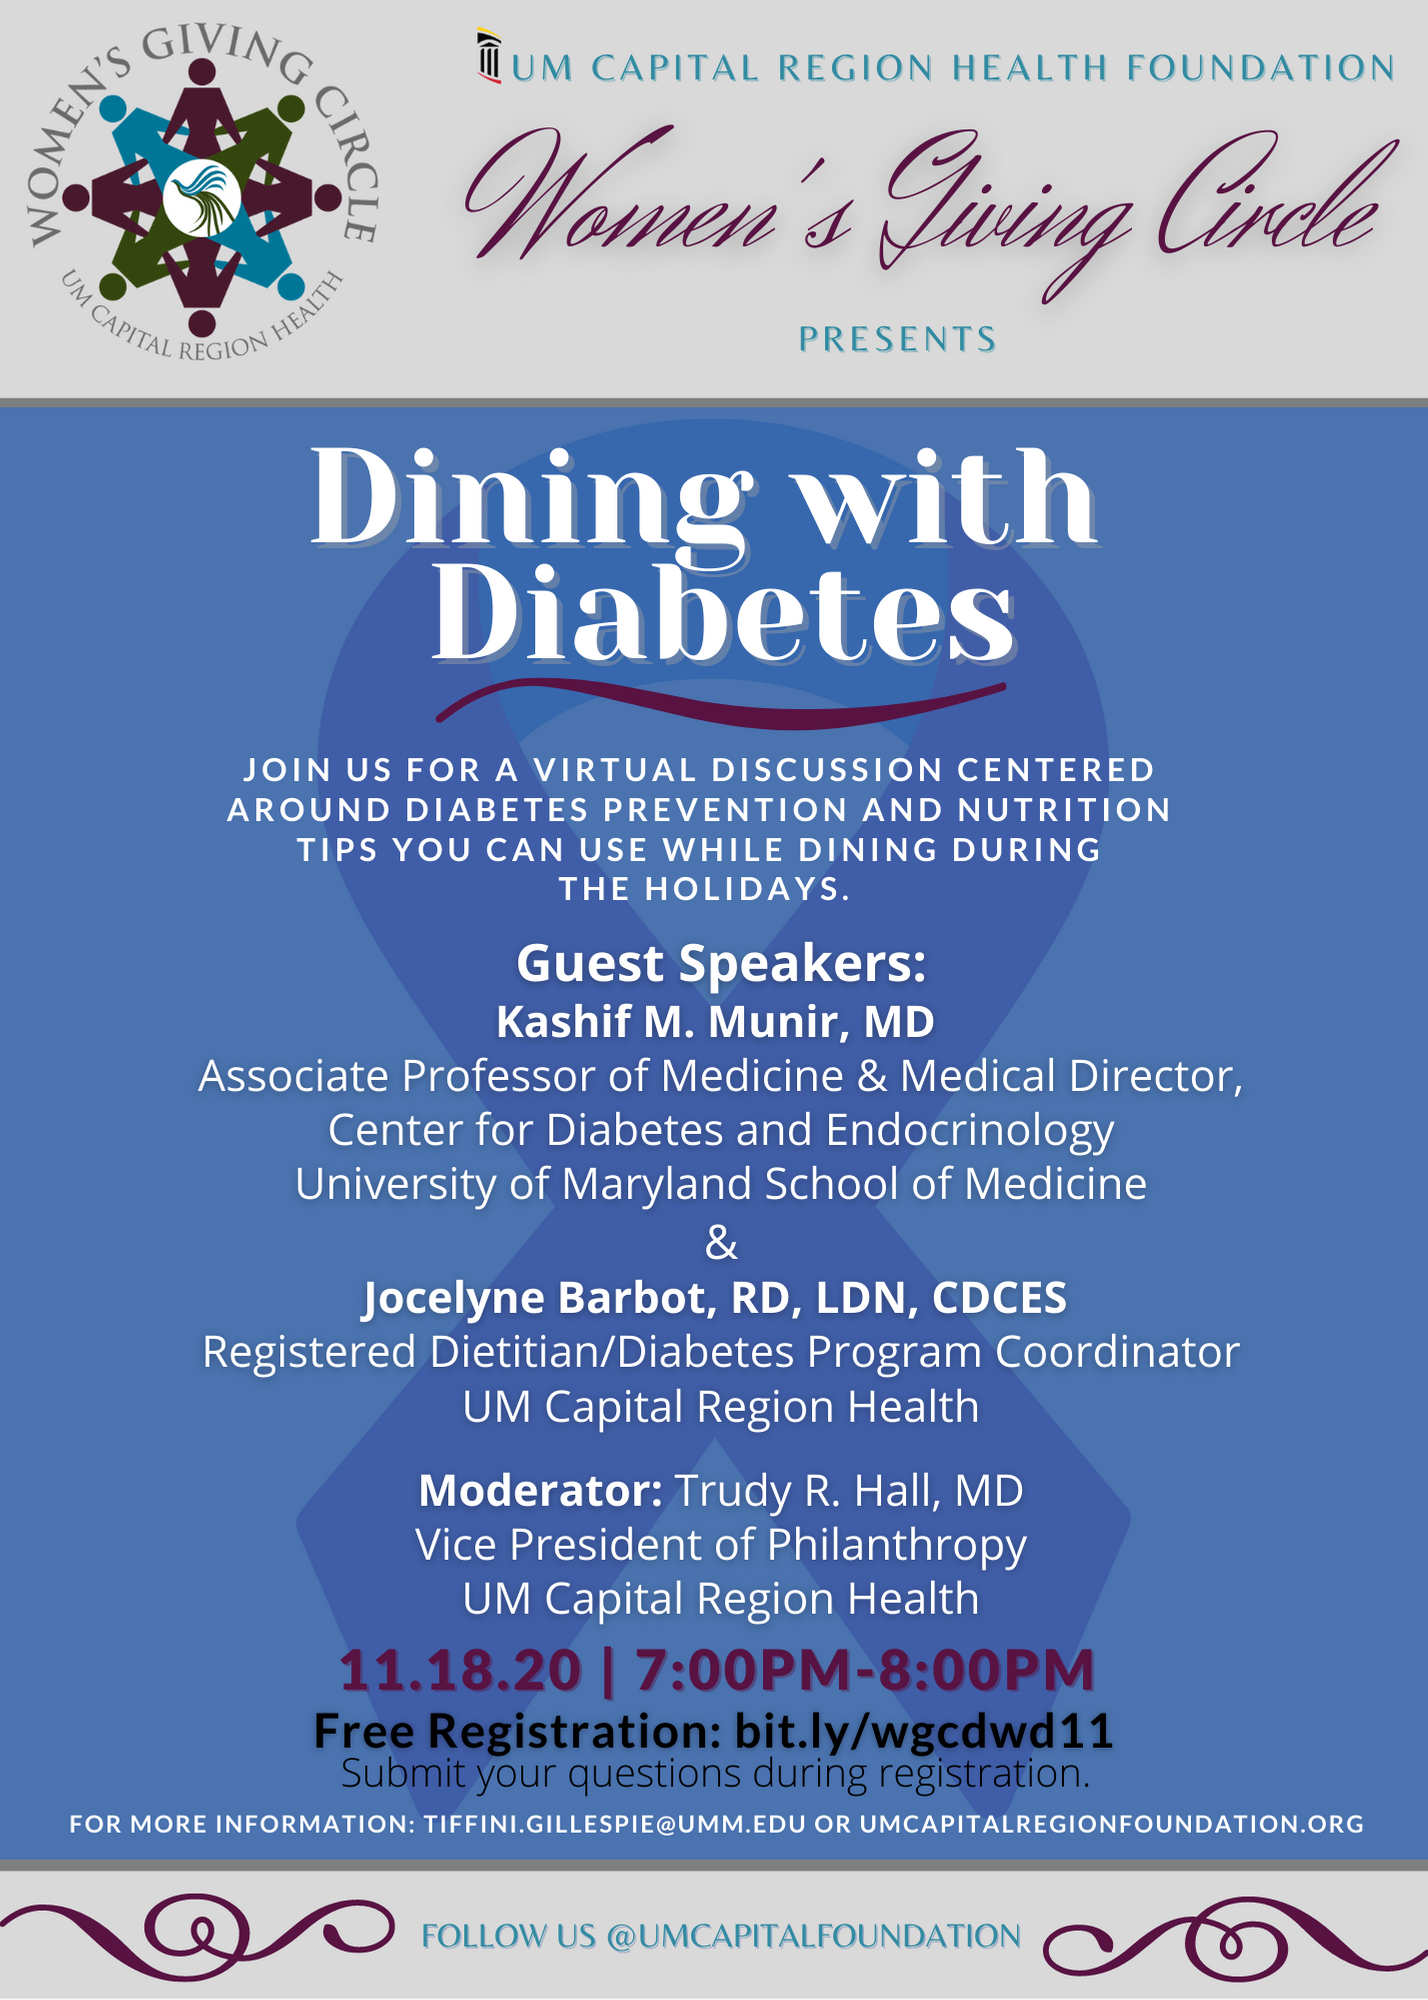 Dining with Diabetes - 11/18